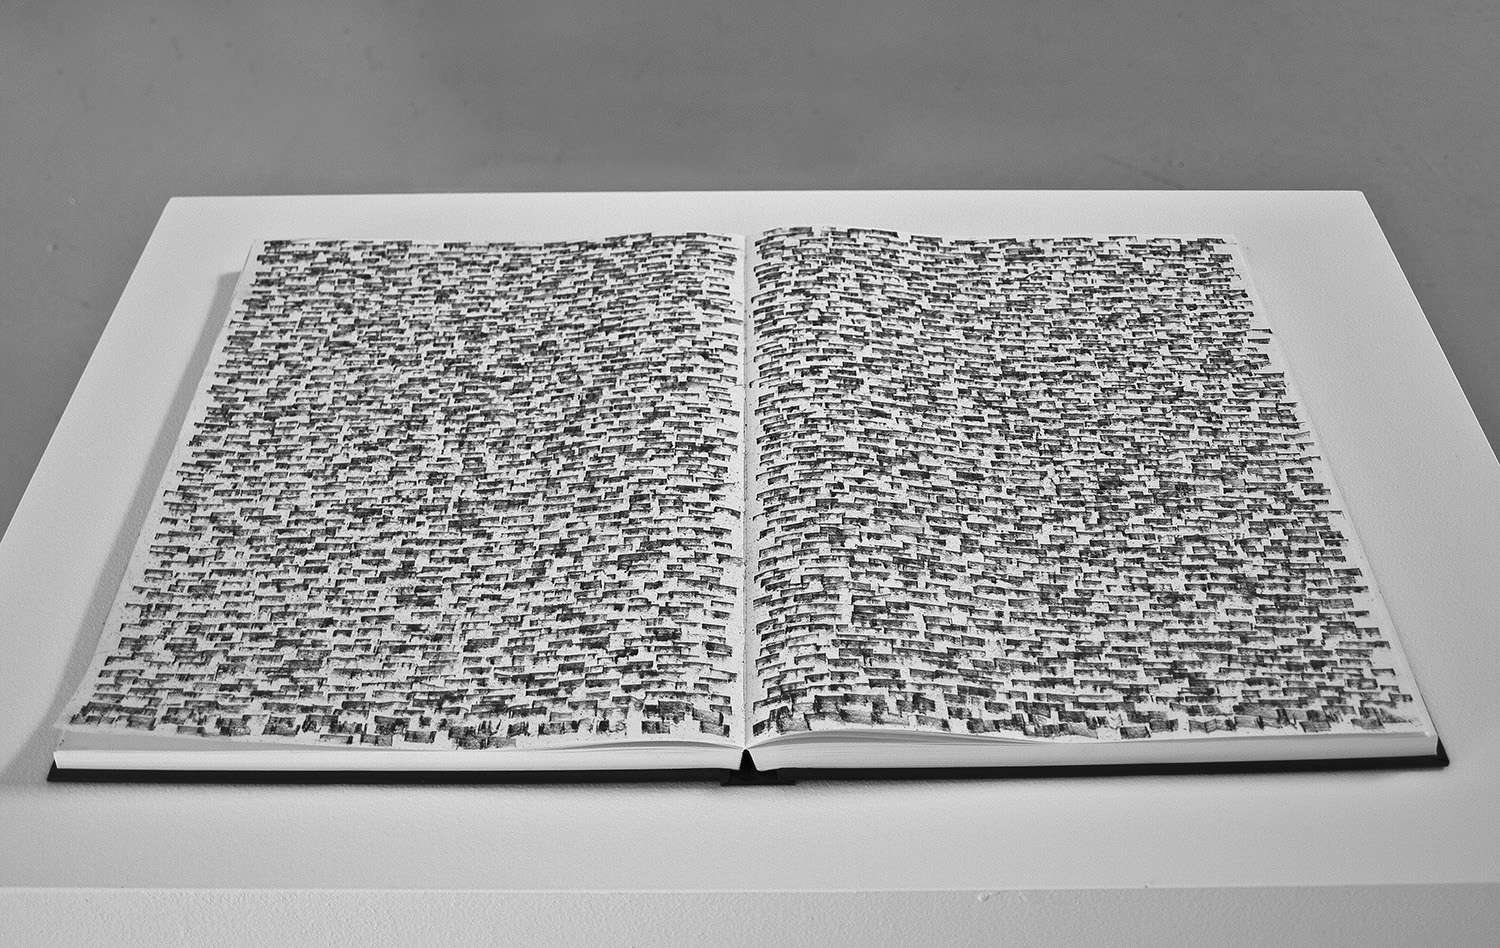 Sketchbook II – The Residue of Writing Ethics,  2010-11, 16 x 24 in (open), sketchbook, graphite